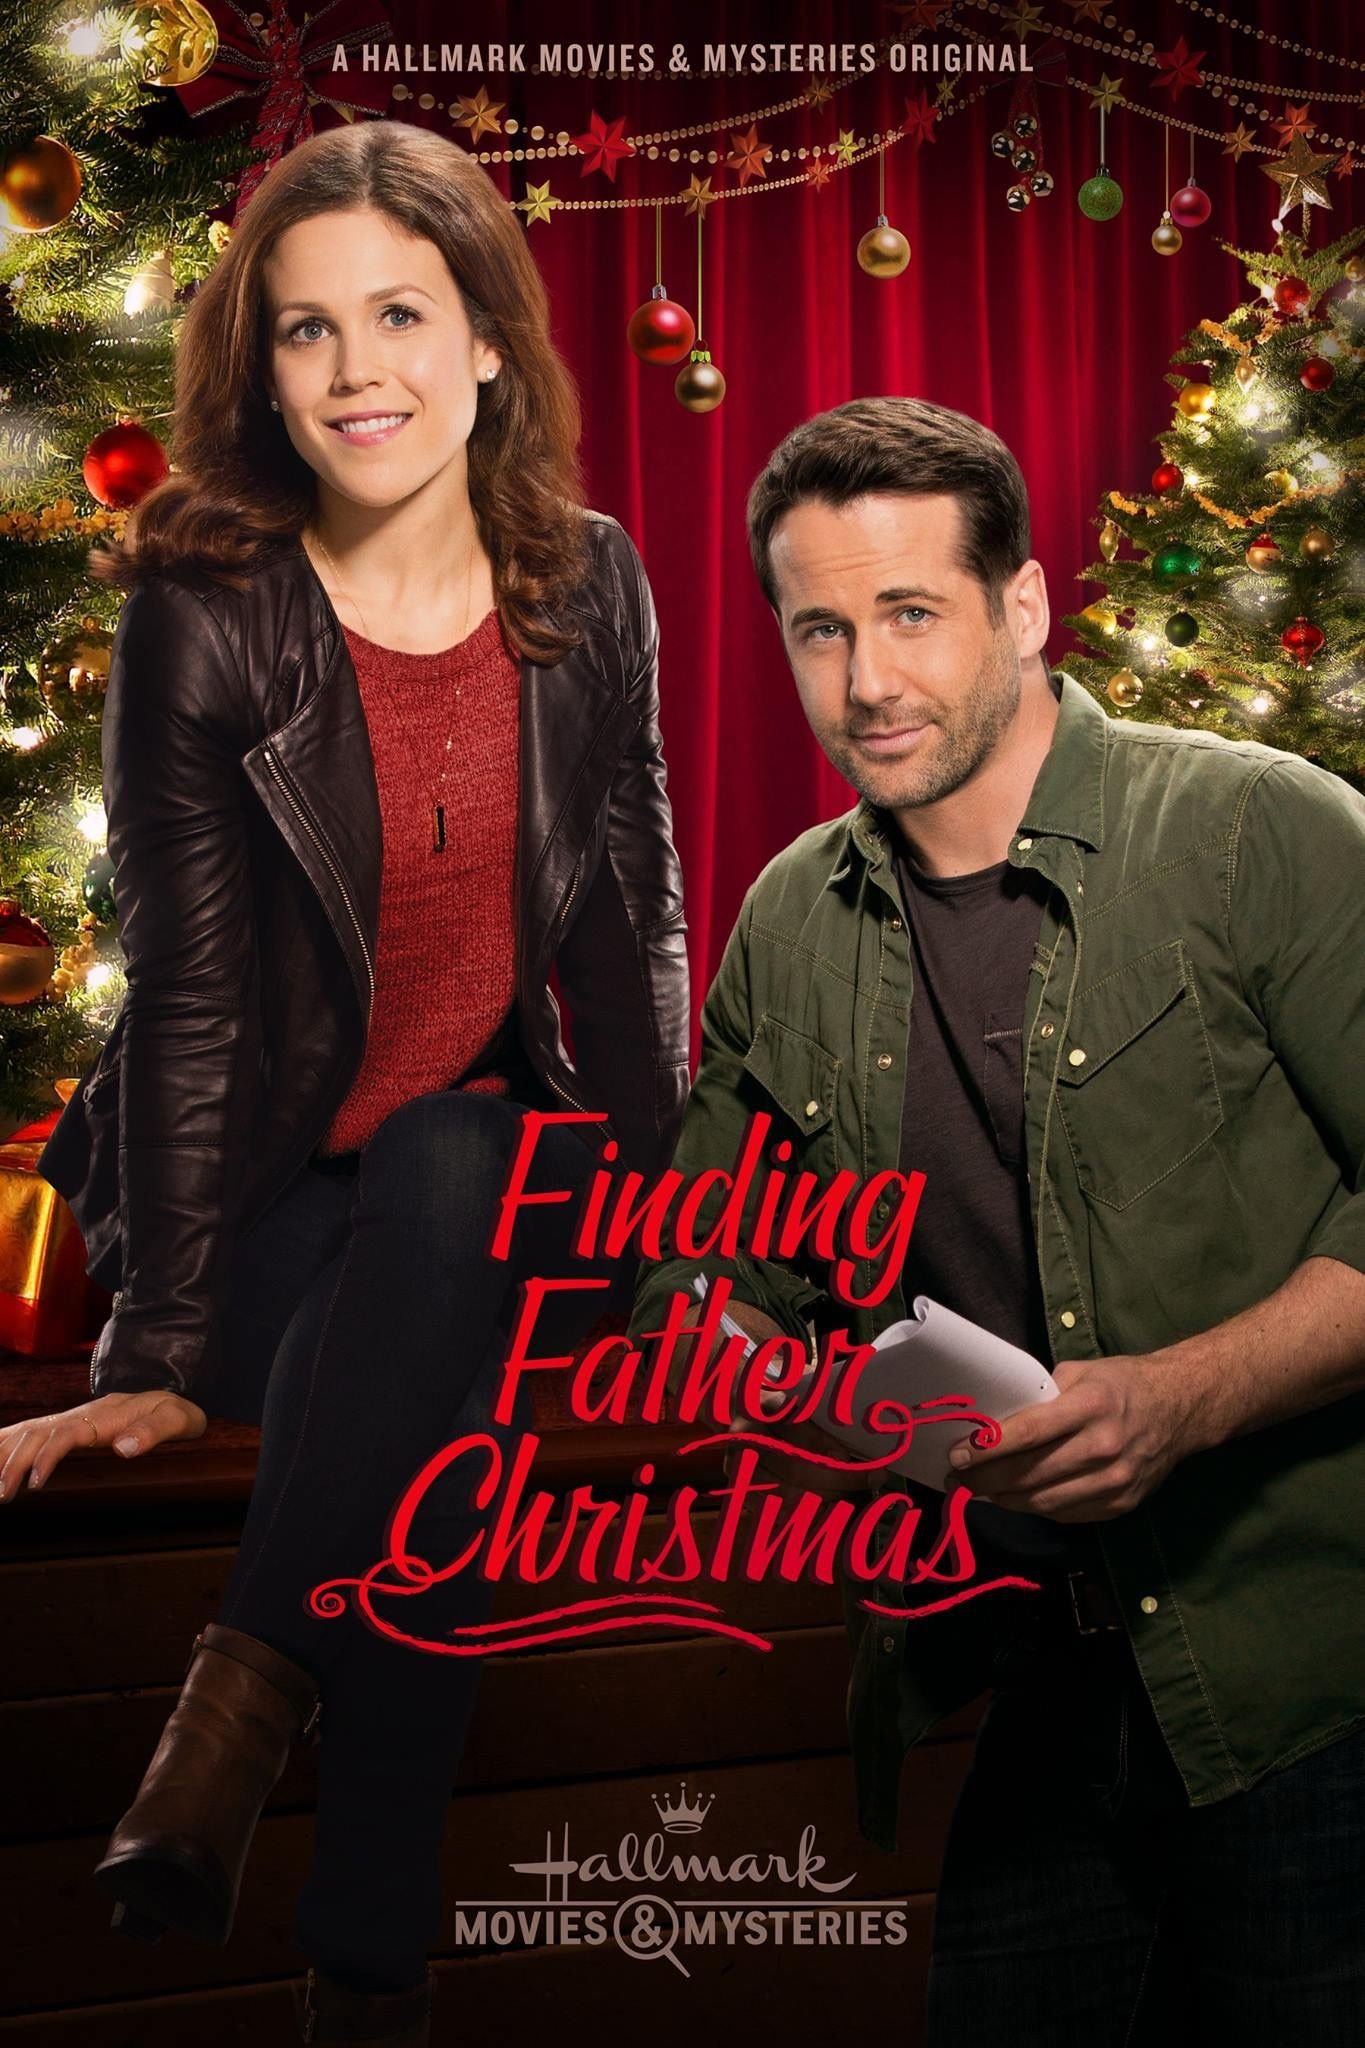 Pin by Karen McLeod on Christmas Movies & tv in 2018